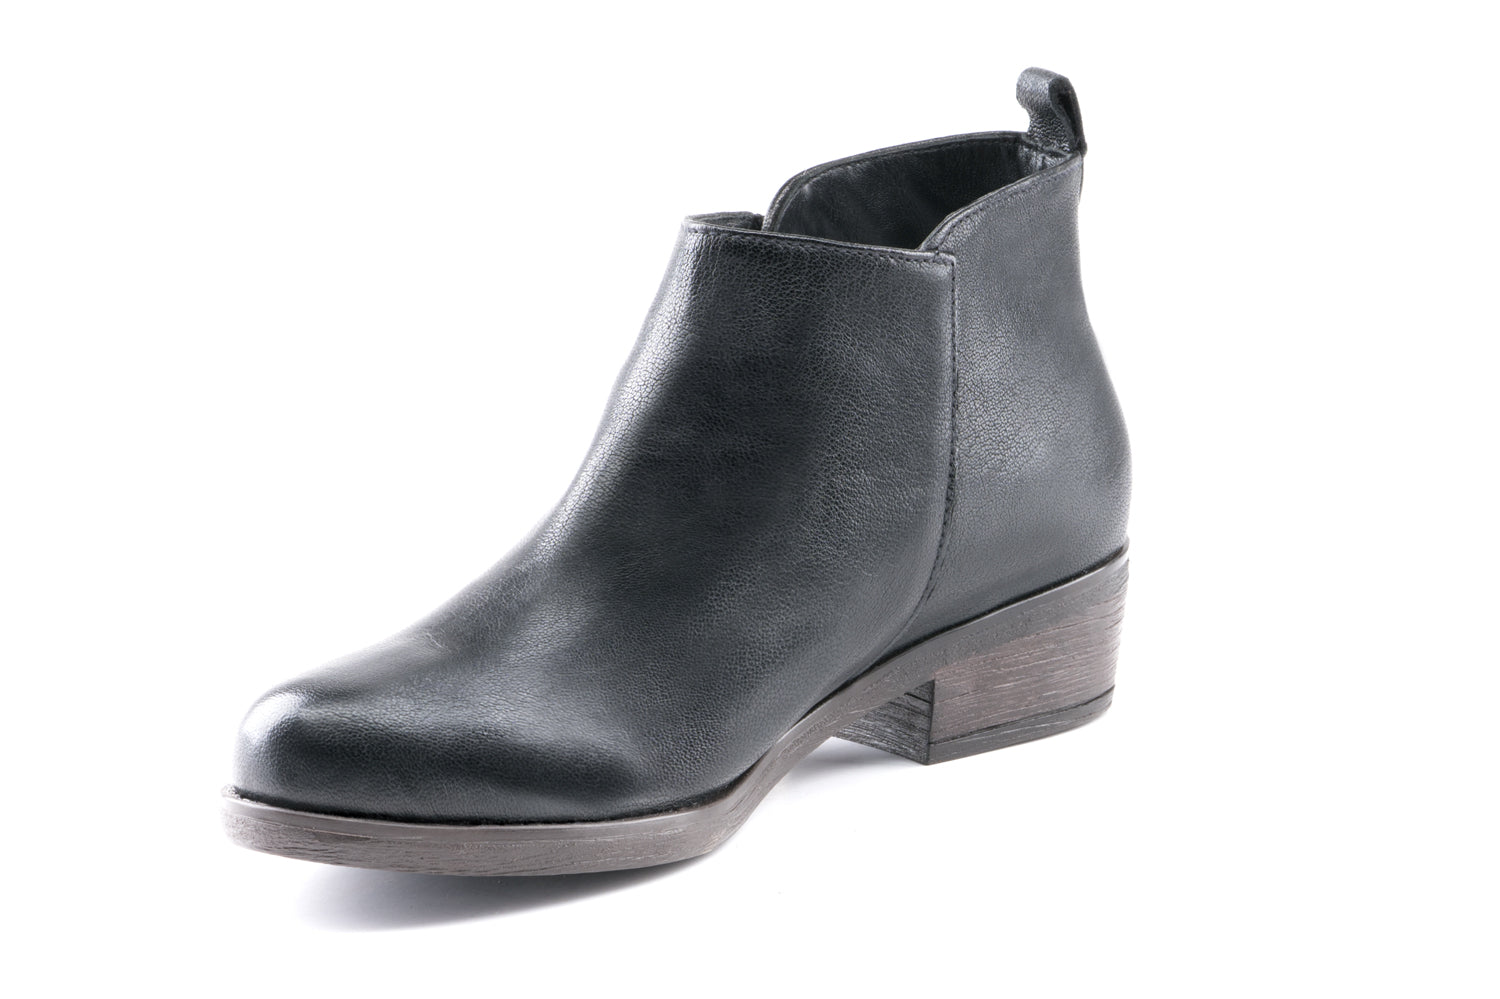 Amber Leather Ankle Bootie - Black